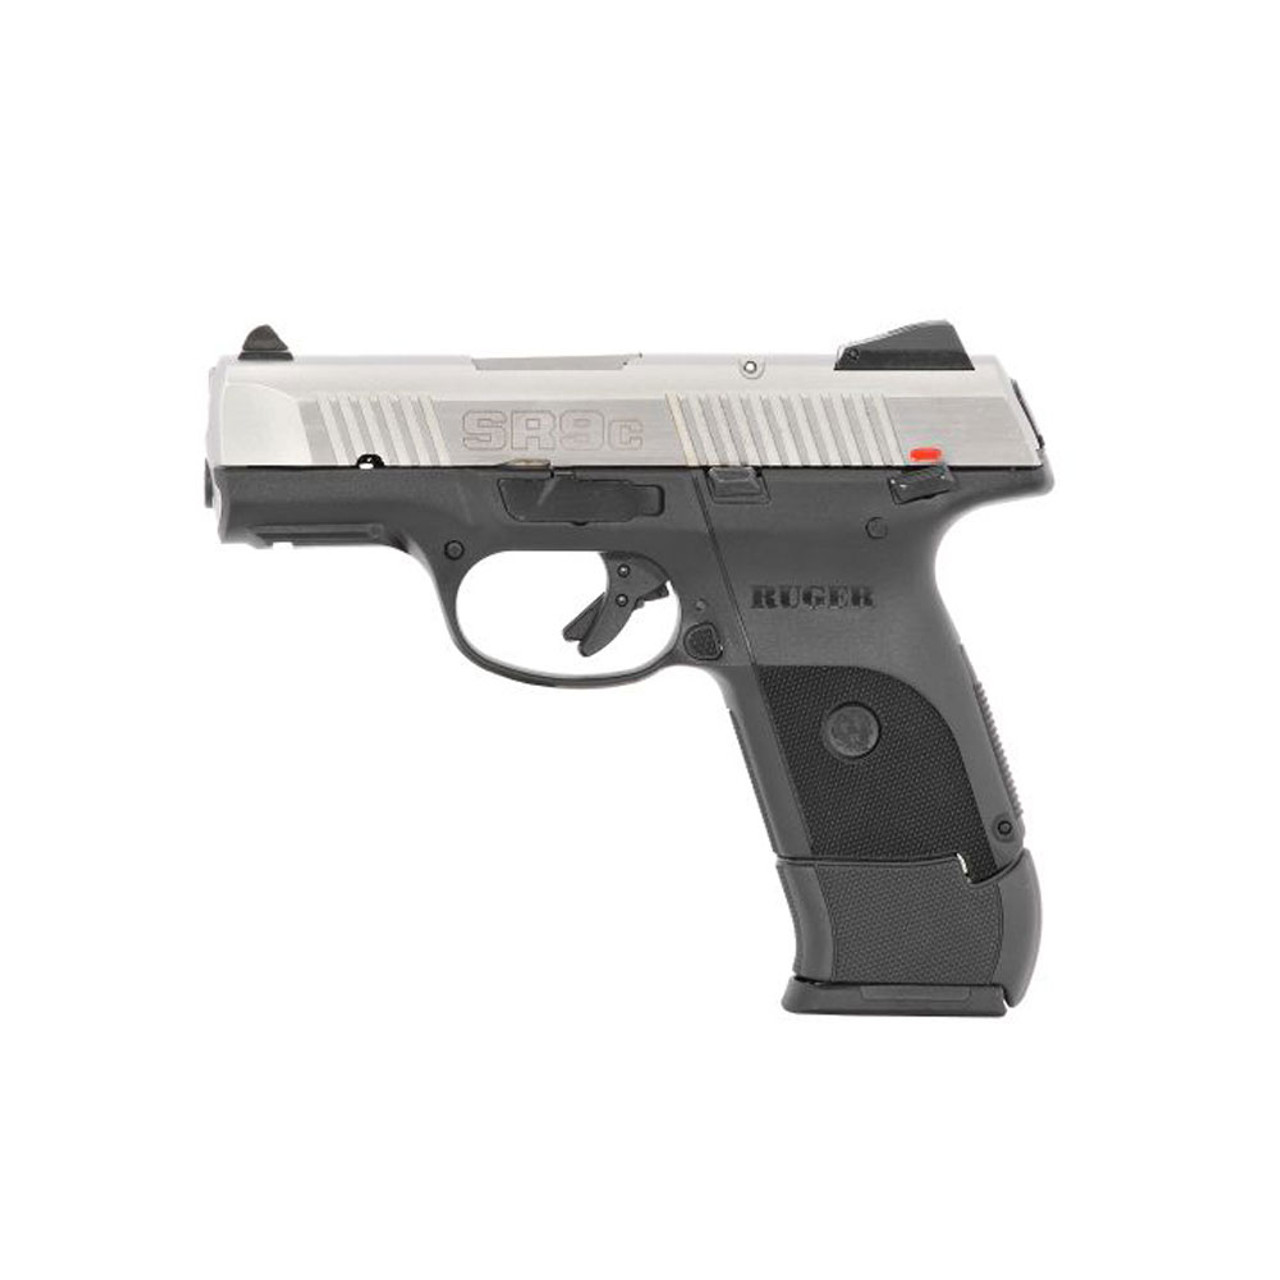 RUGER SR9c 9mm 3 5in 1x10rd 1x17rd Semi-Automatic Pistol (3313)